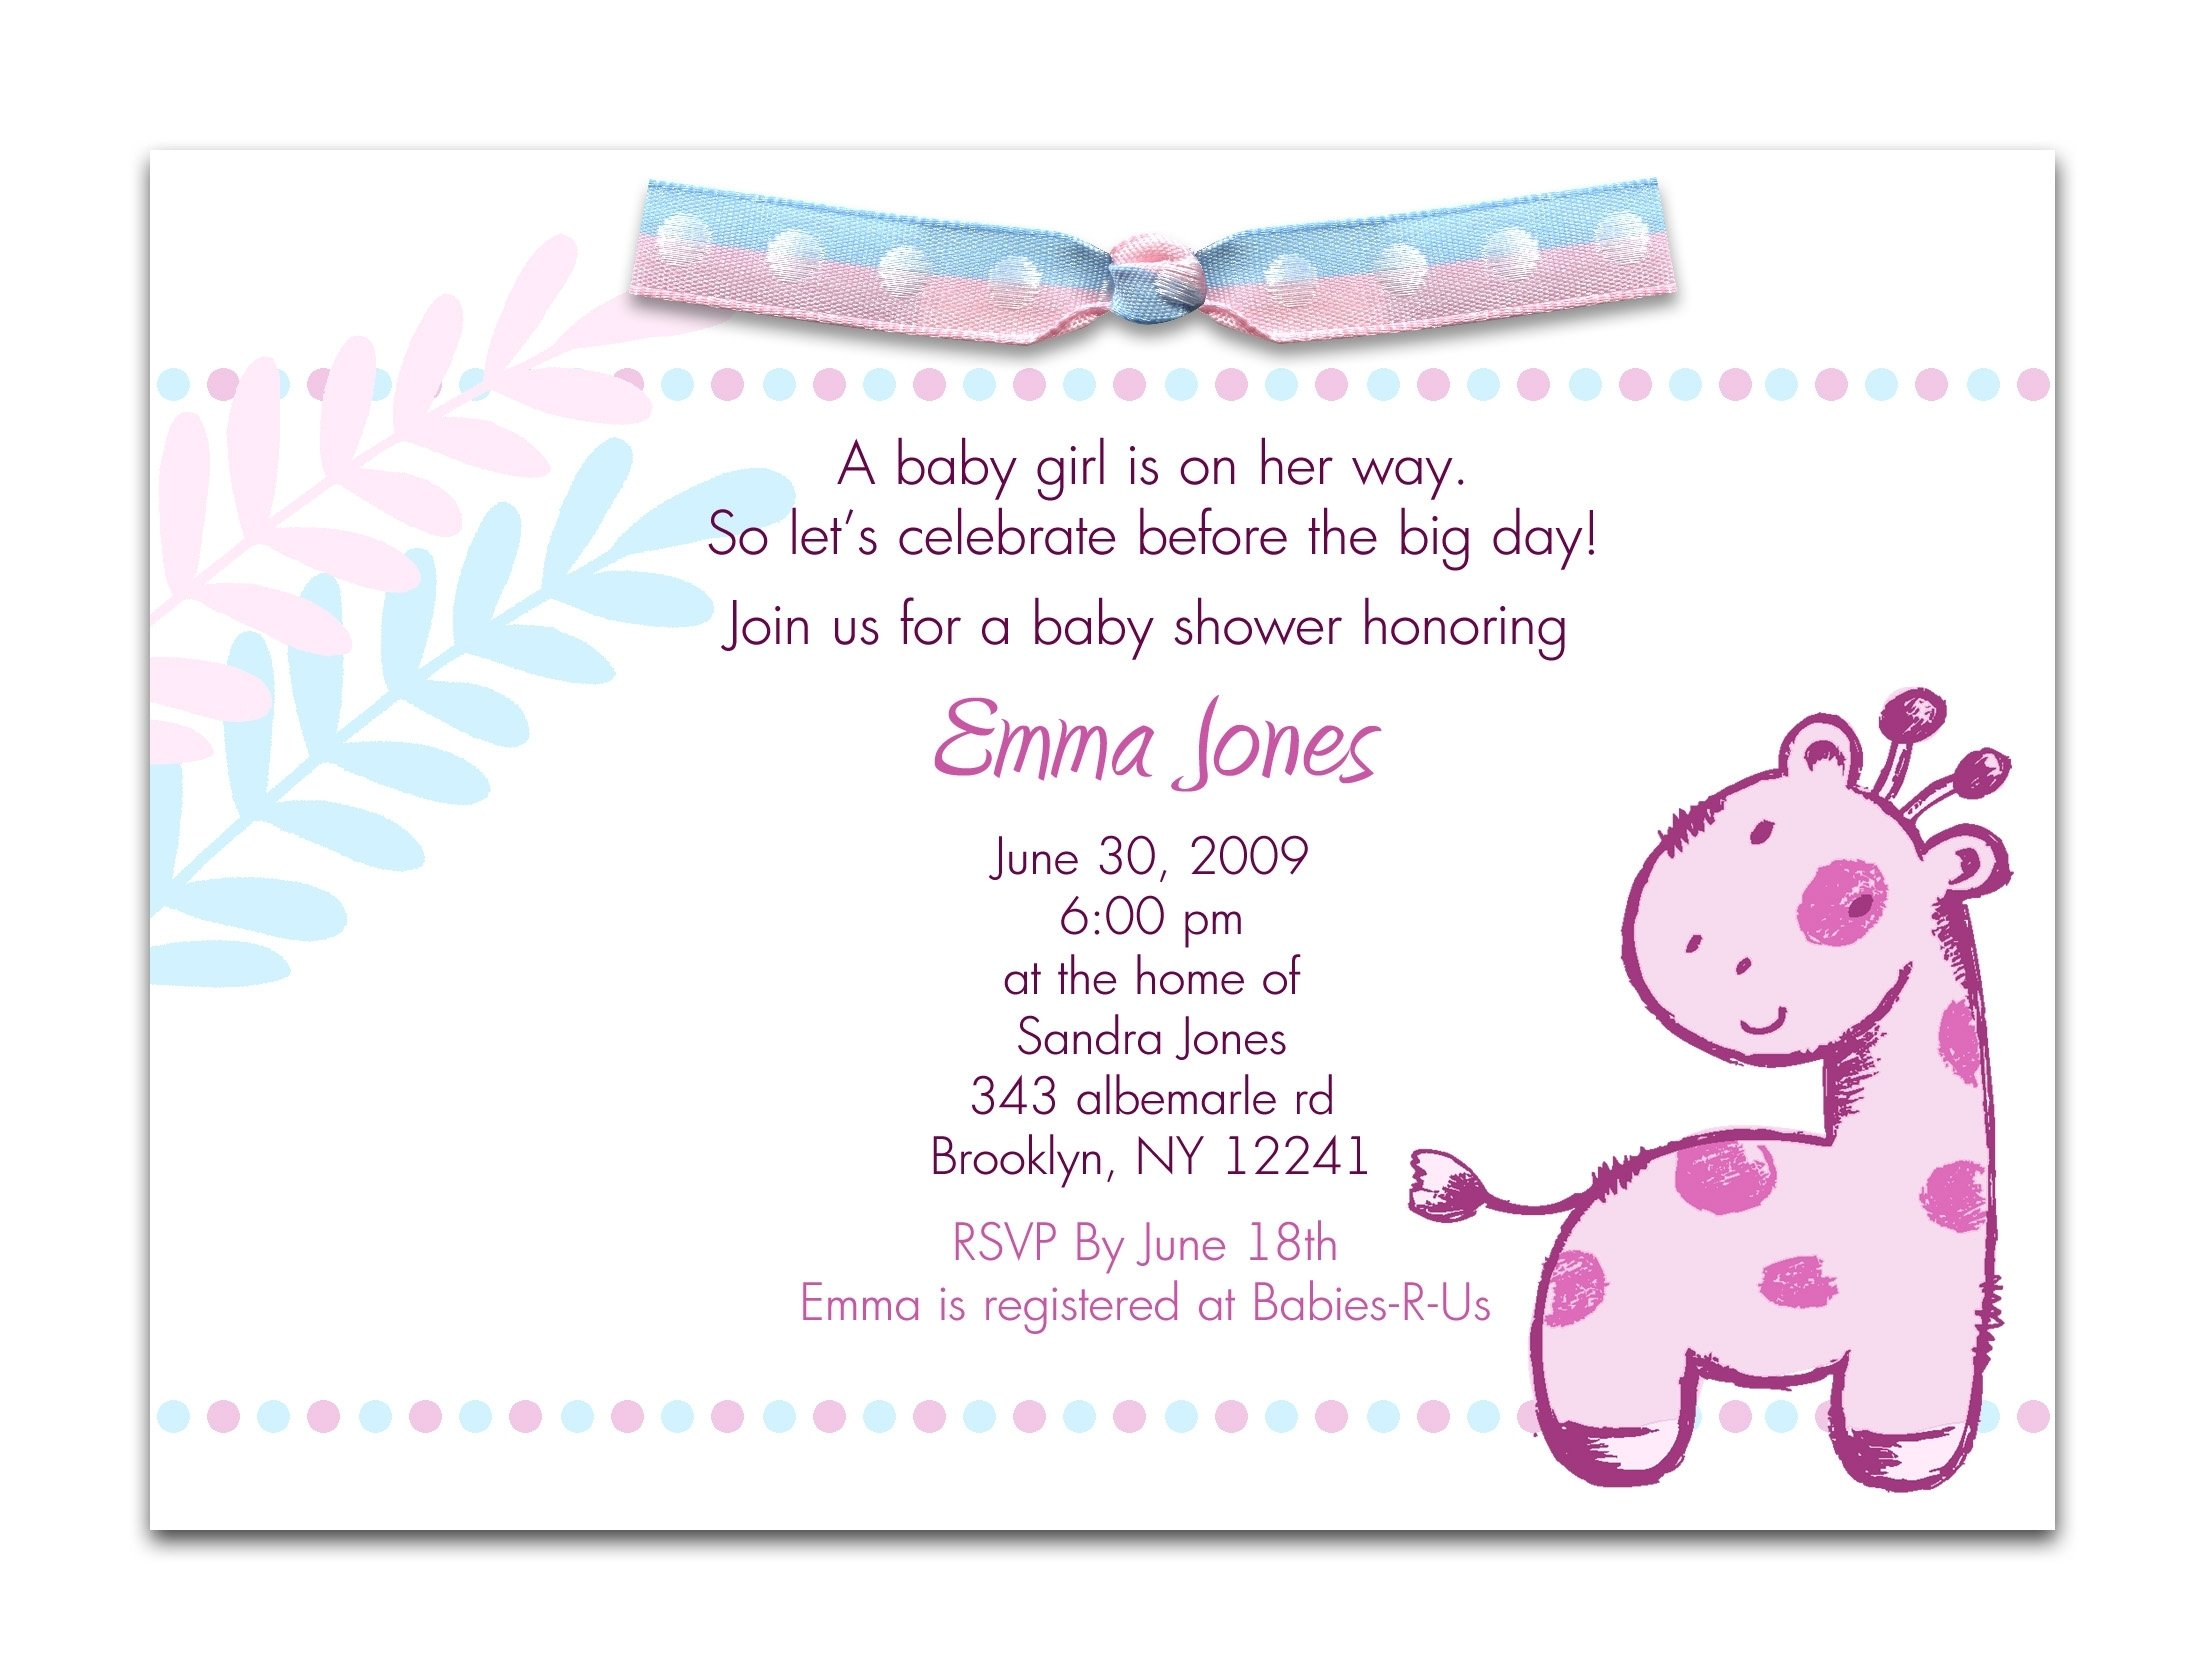 10 Most Popular Cute Baby Shower Invitation Ideas baby shower invite words coles thecolossus co 2020